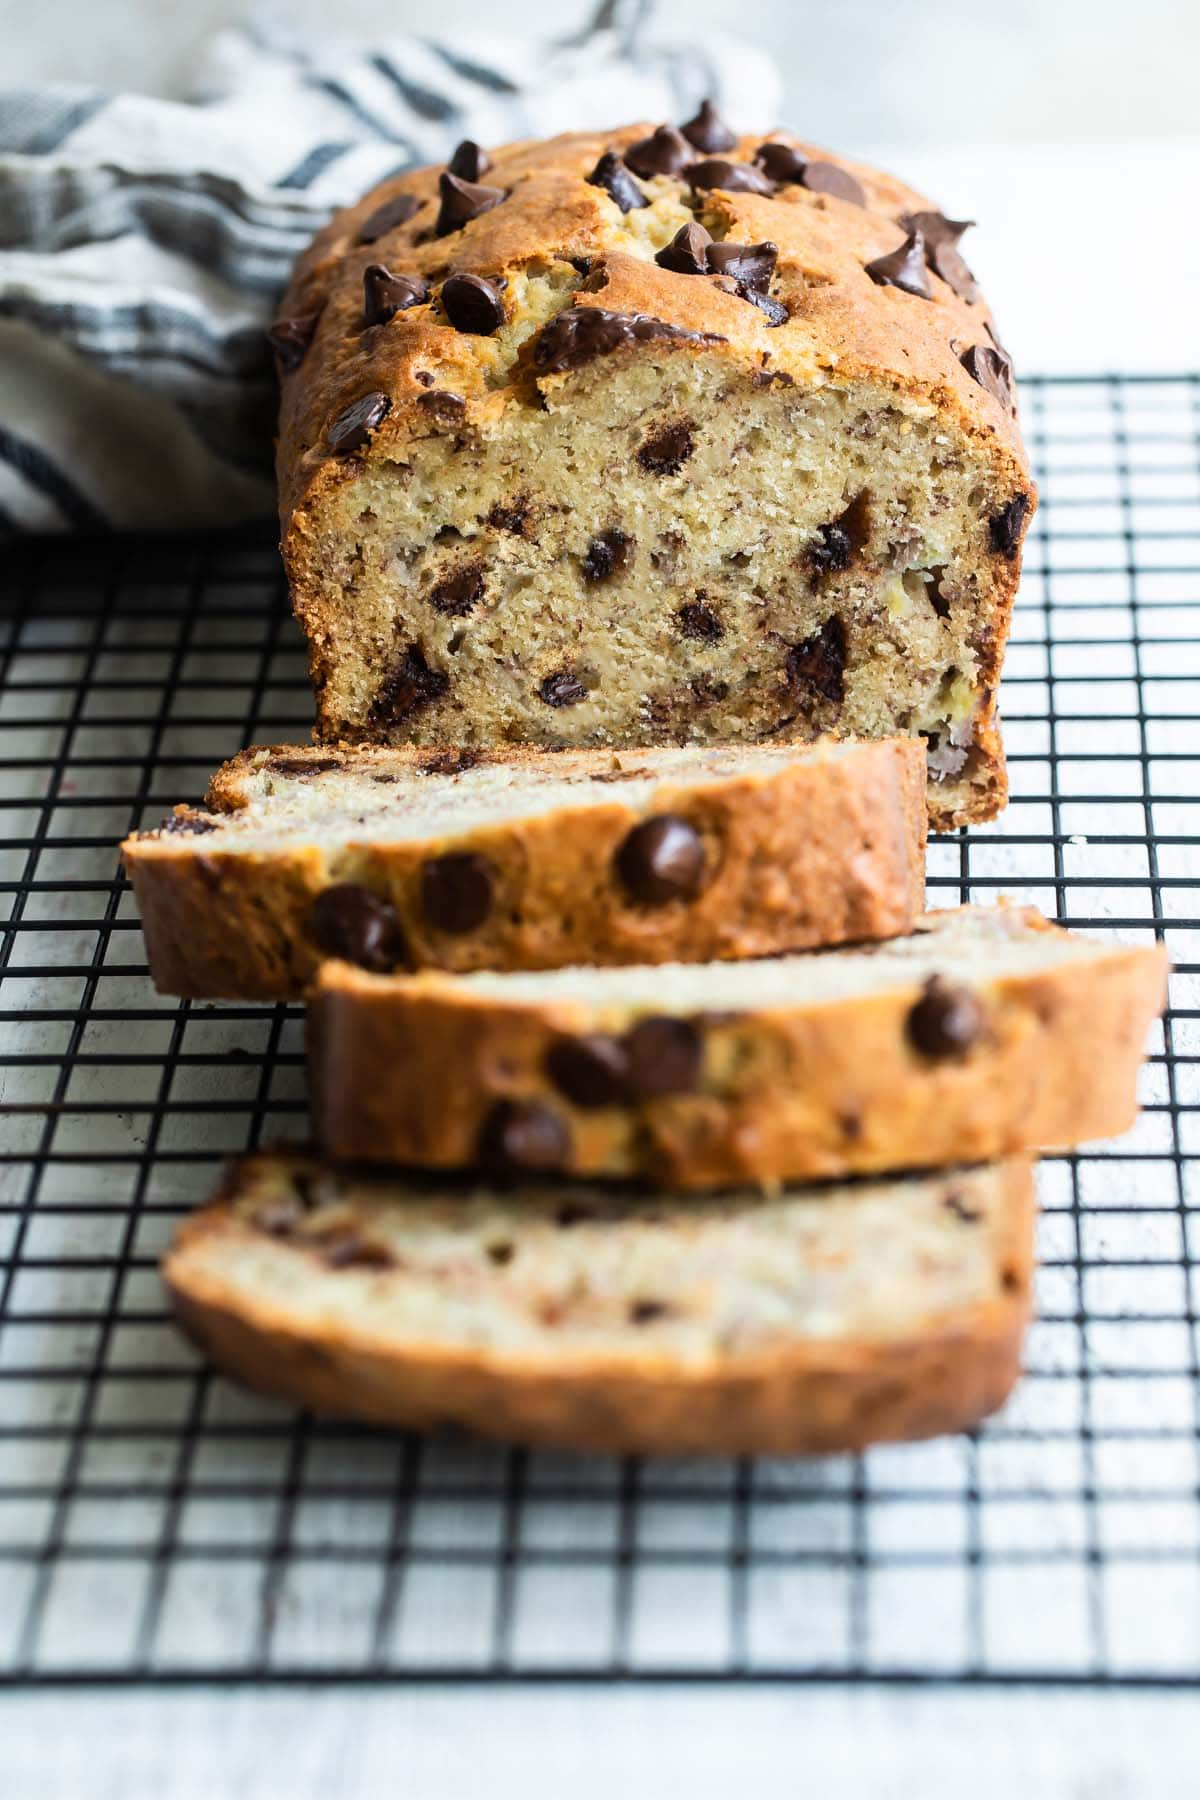 A sliced loaf of banana bread with chocolate chips.